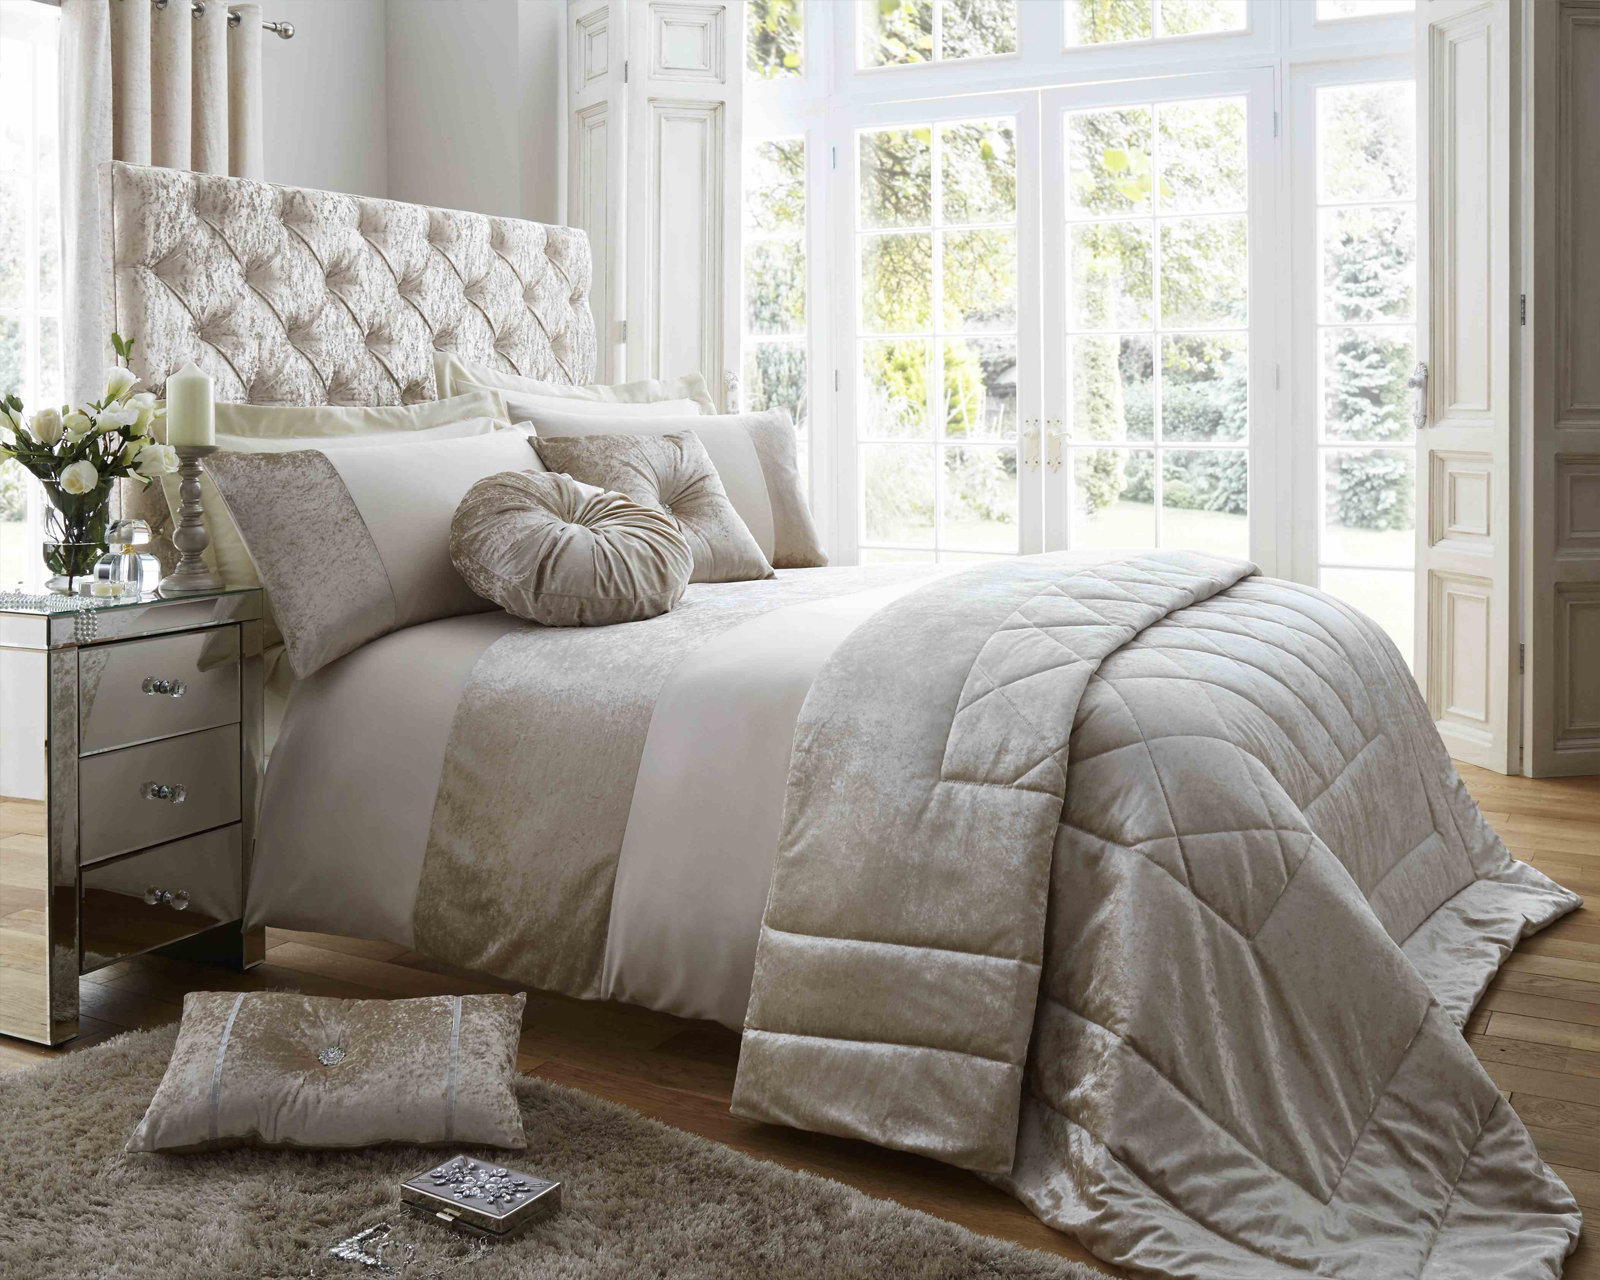 Duchess Matt Satin and Crushed Velvet Bedding Set in Oyster